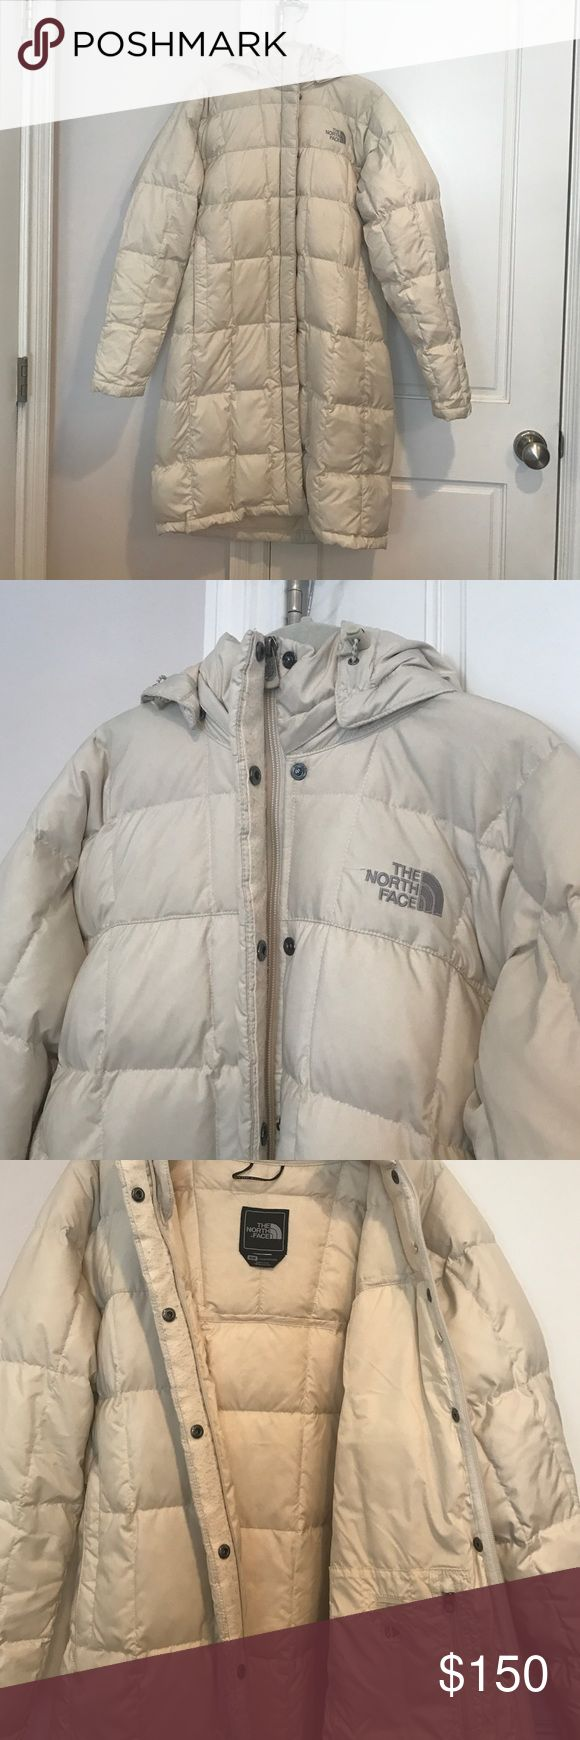 North Face Metropolis Parka North Face Metropolis Parka. Good condition, jacket shows some signs of wear, slight pilling on button flap lining. Very warm, down fill. Features two exterior and one zippered interior pocket. Hood is removable. North Face Jackets & Coats